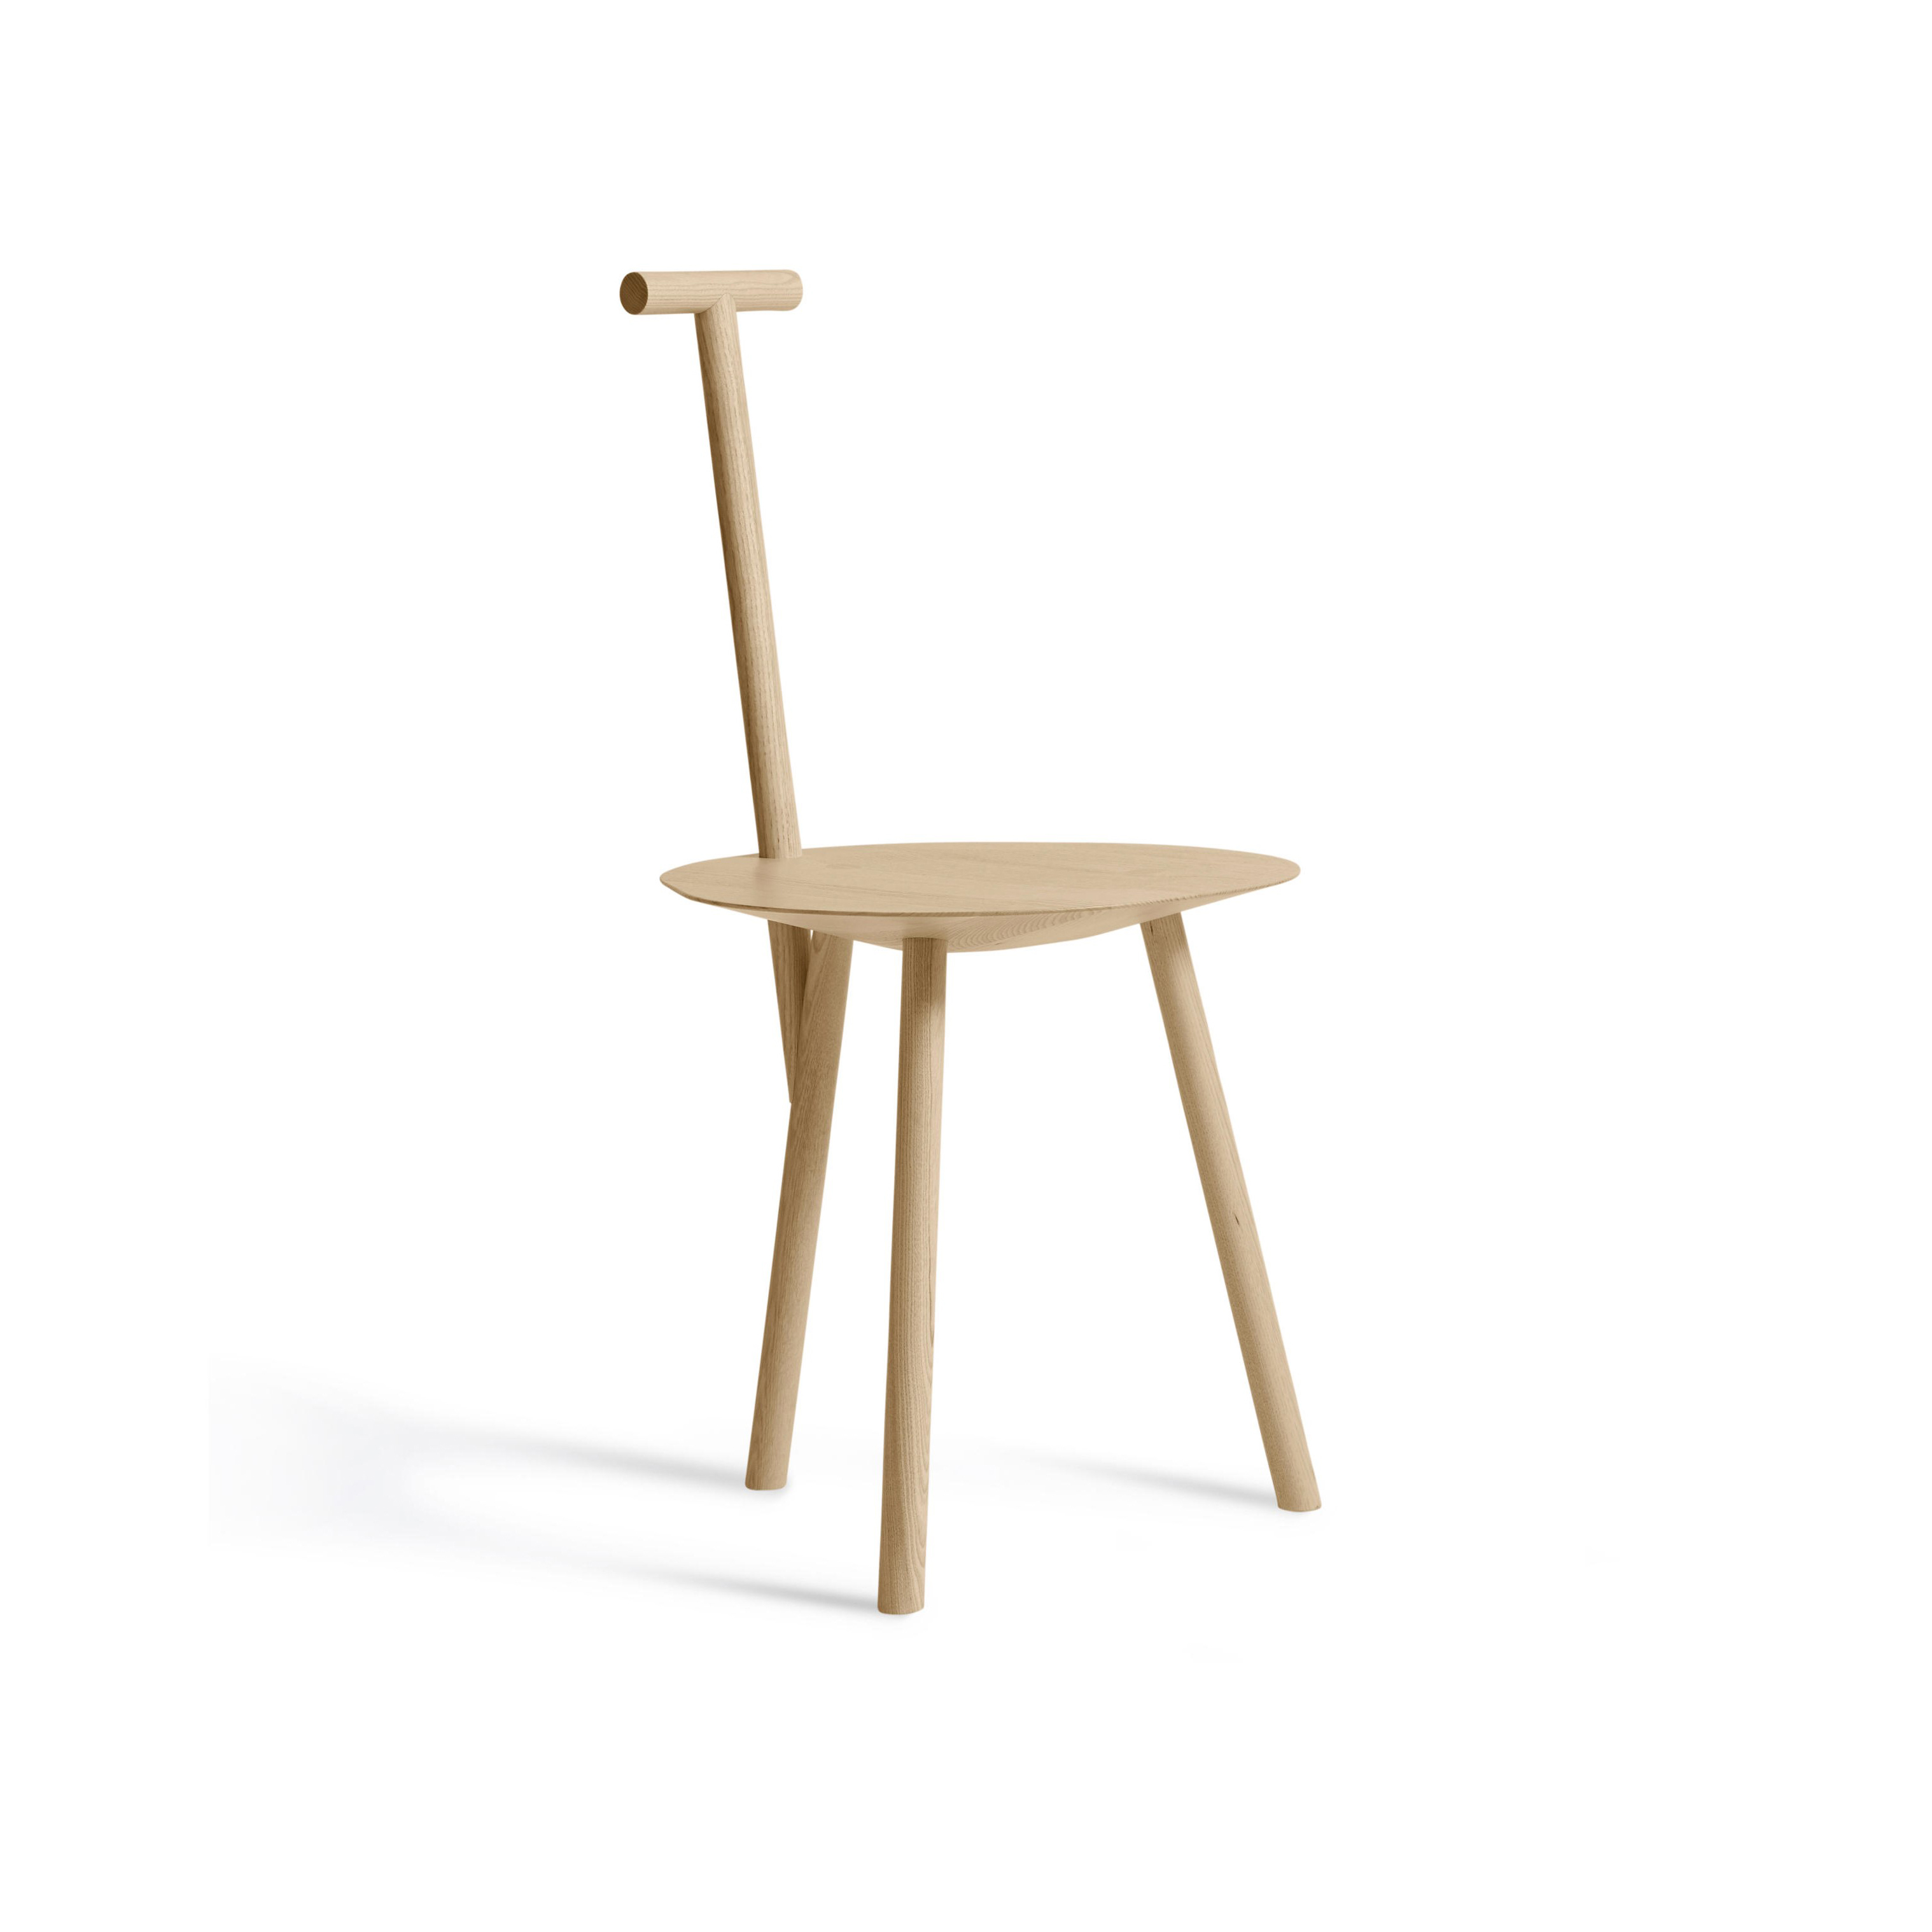 PWTBS Spade Chair